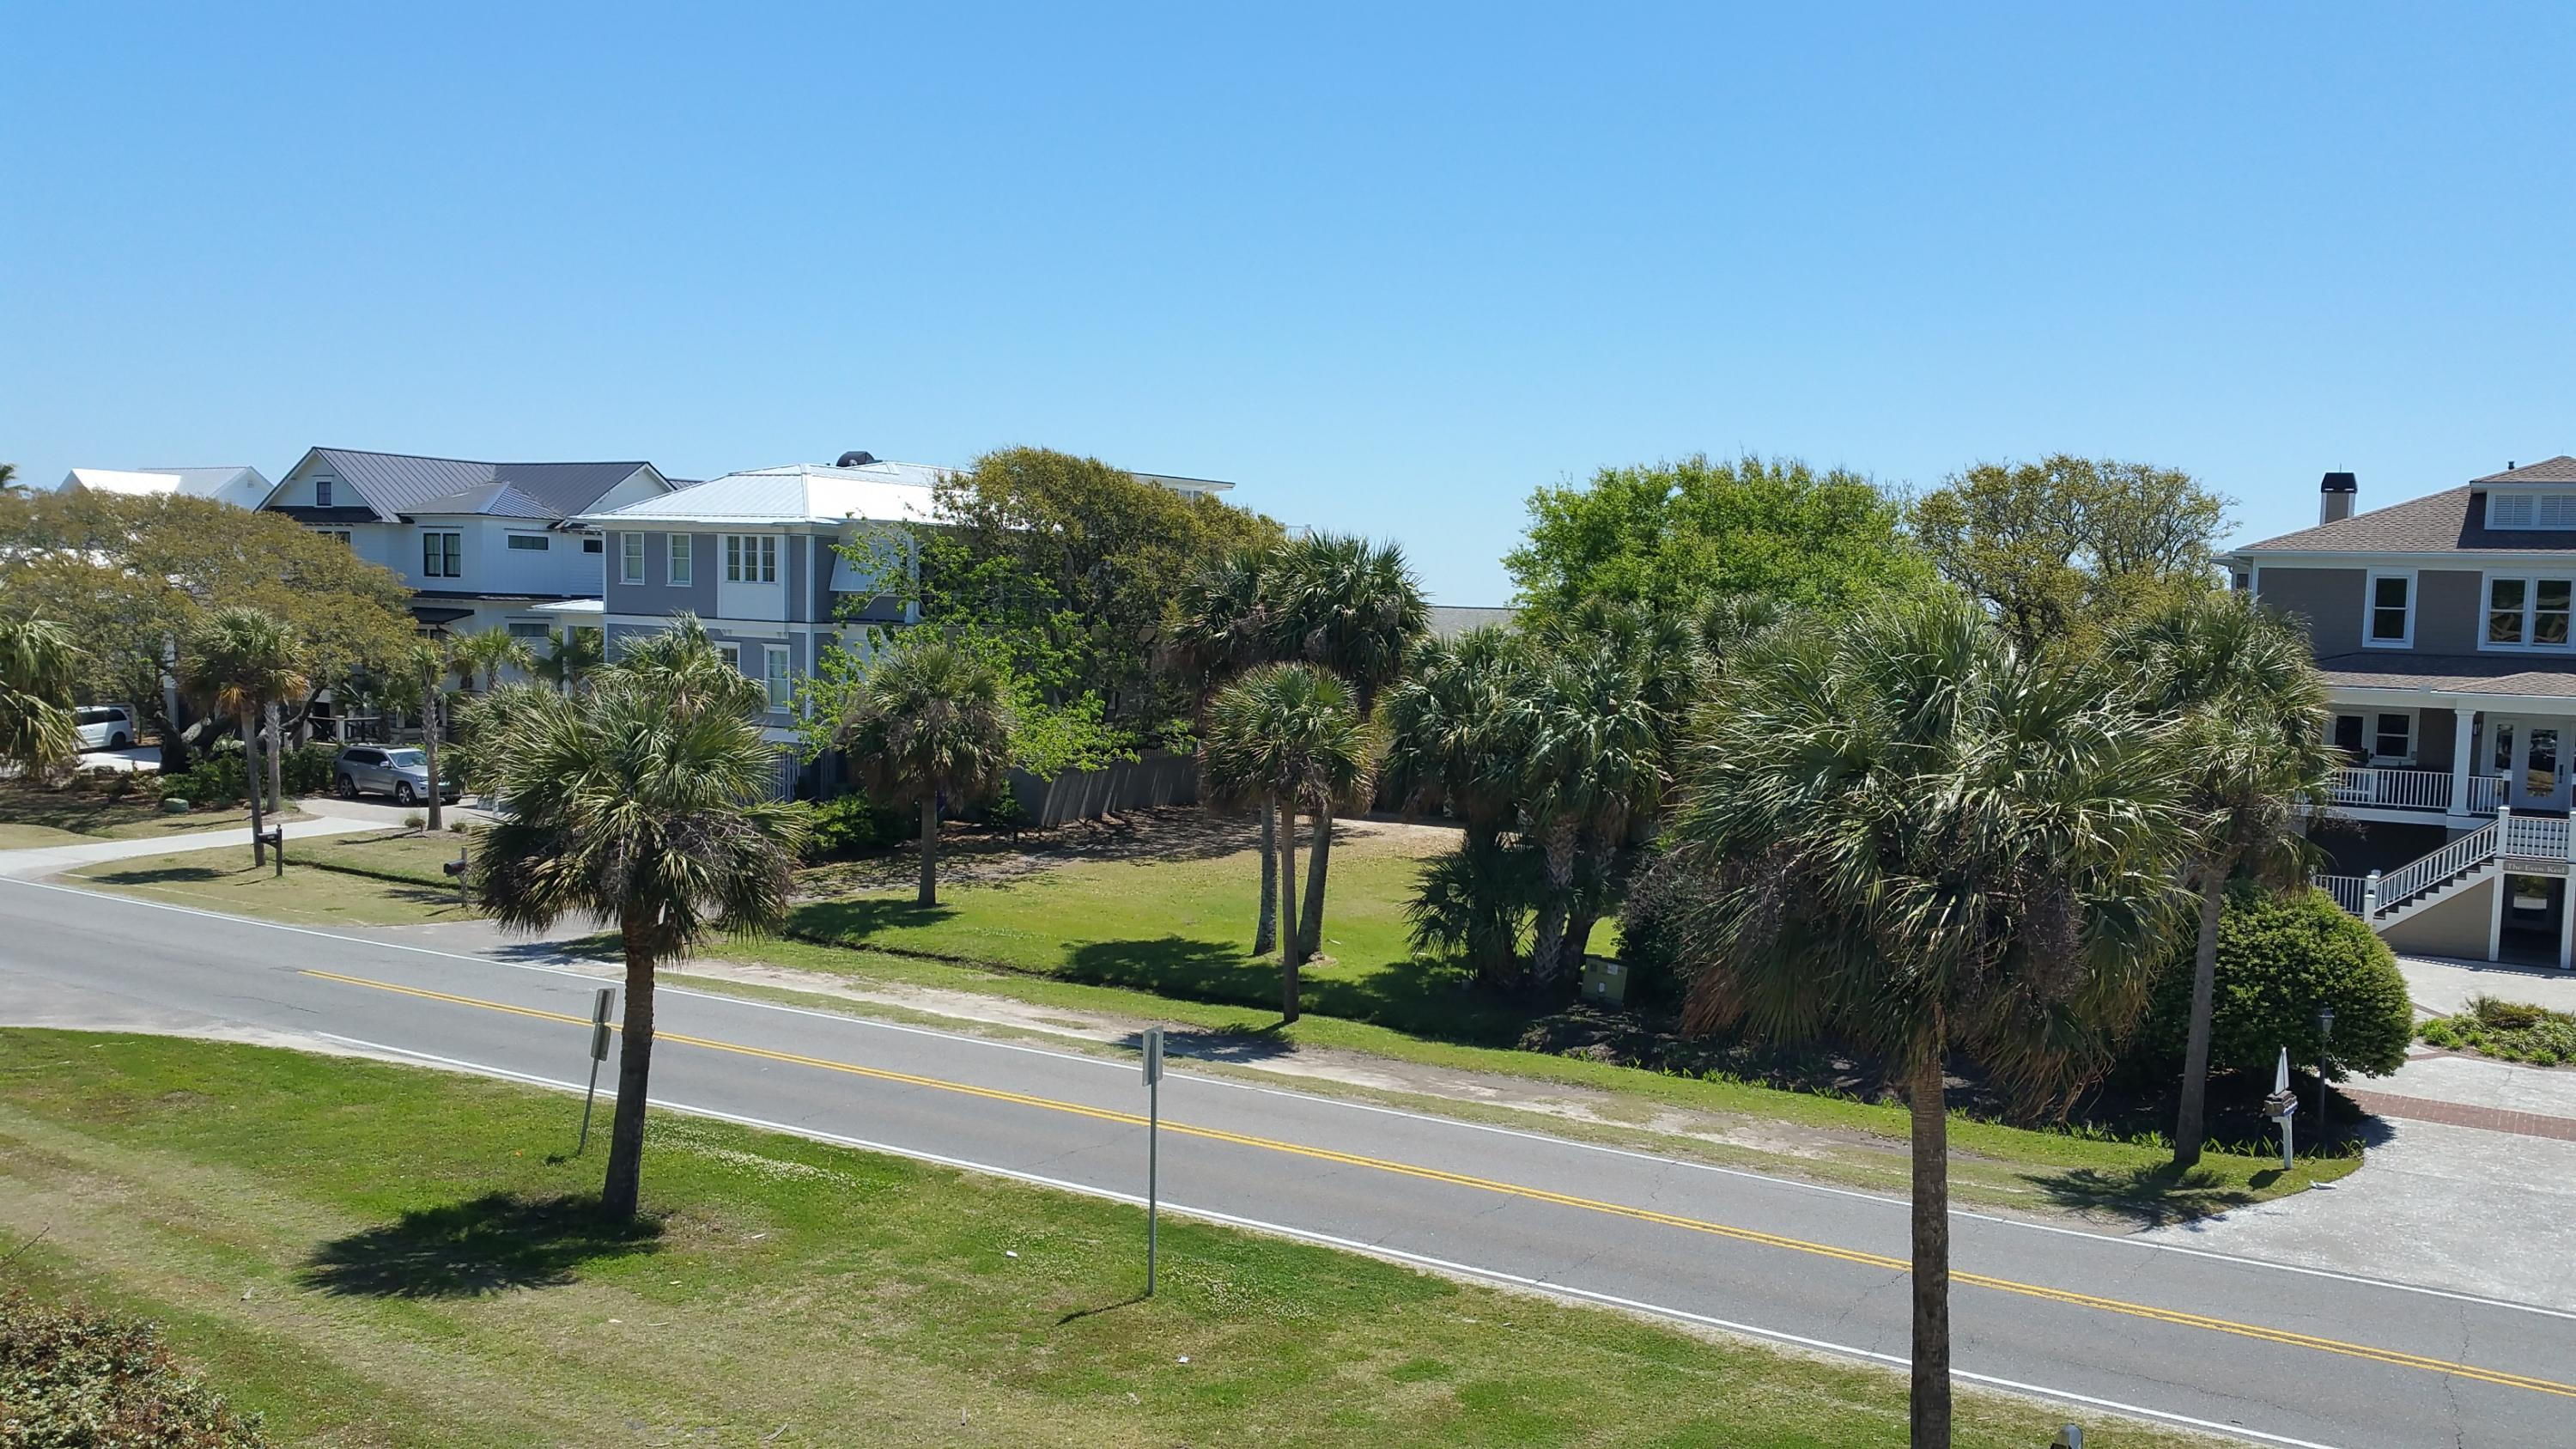 Isle of Palms Homes For Sale - 2305 Palm, Isle of Palms, SC - 18